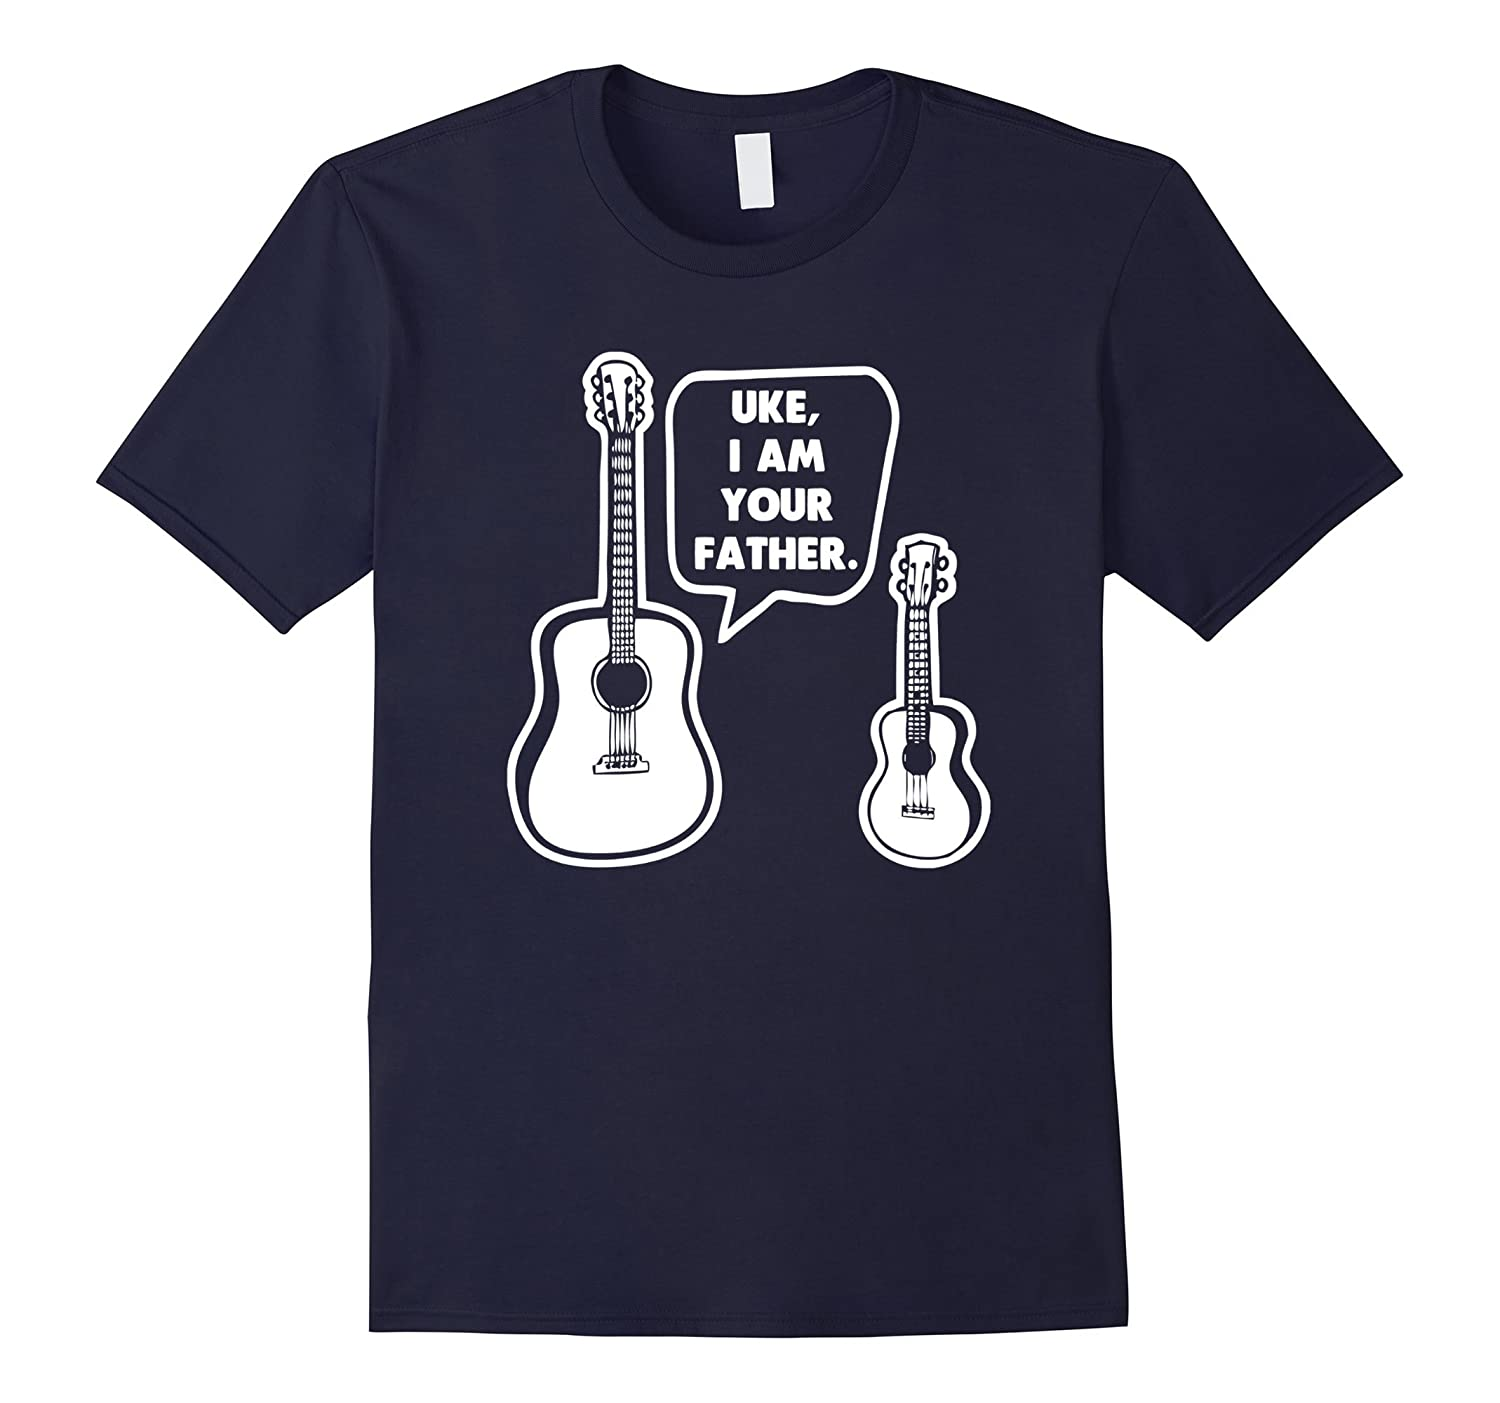 Uke I Am Your Father T-Shirt funny saying sarcastic novelty-TH